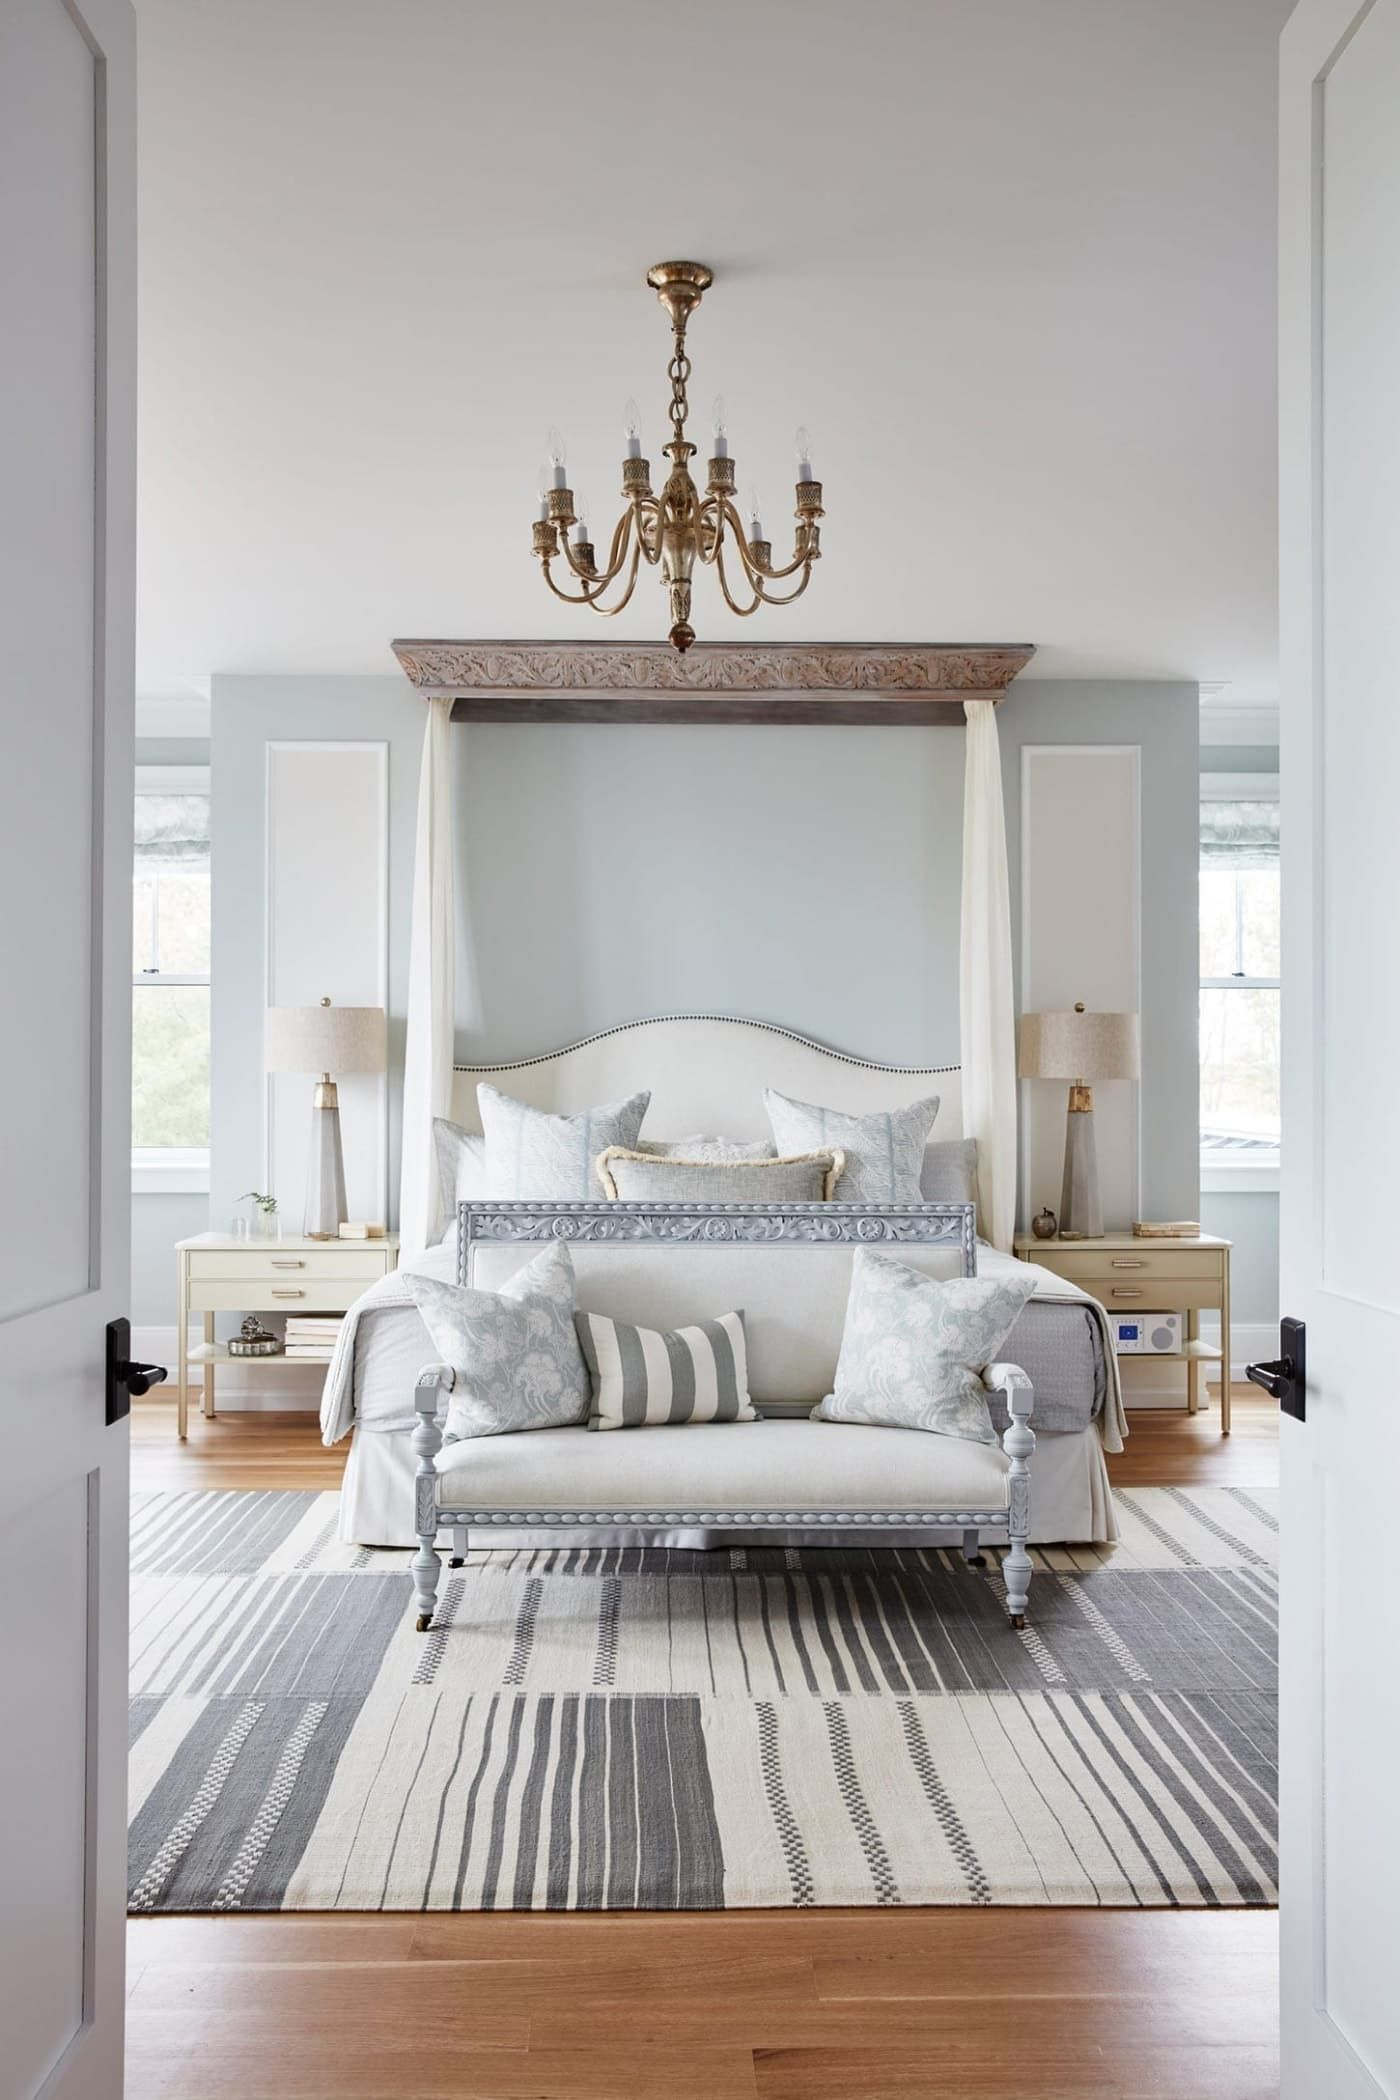 Traditional Design And Classic Decor In A Bedroom By Sarah